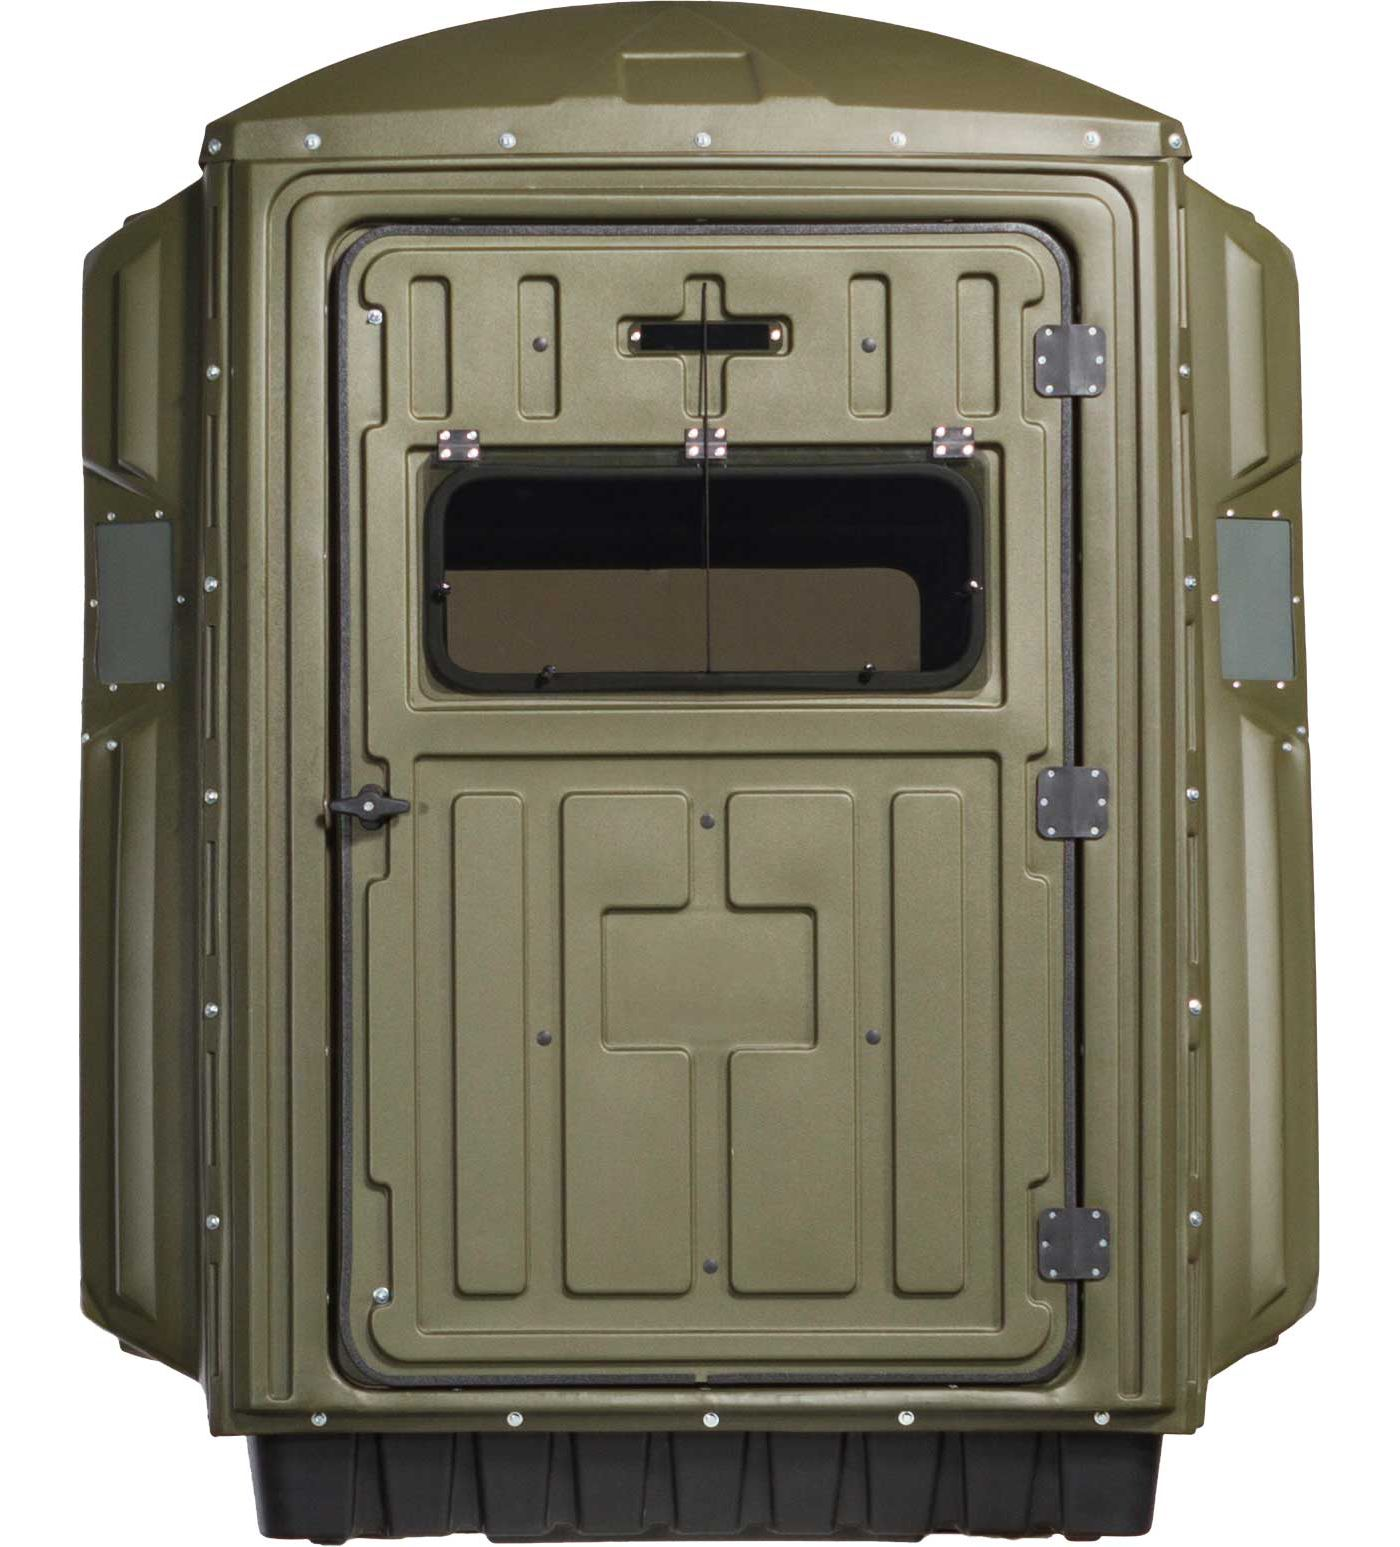 Advantage Hunting Two-Person Box Blind